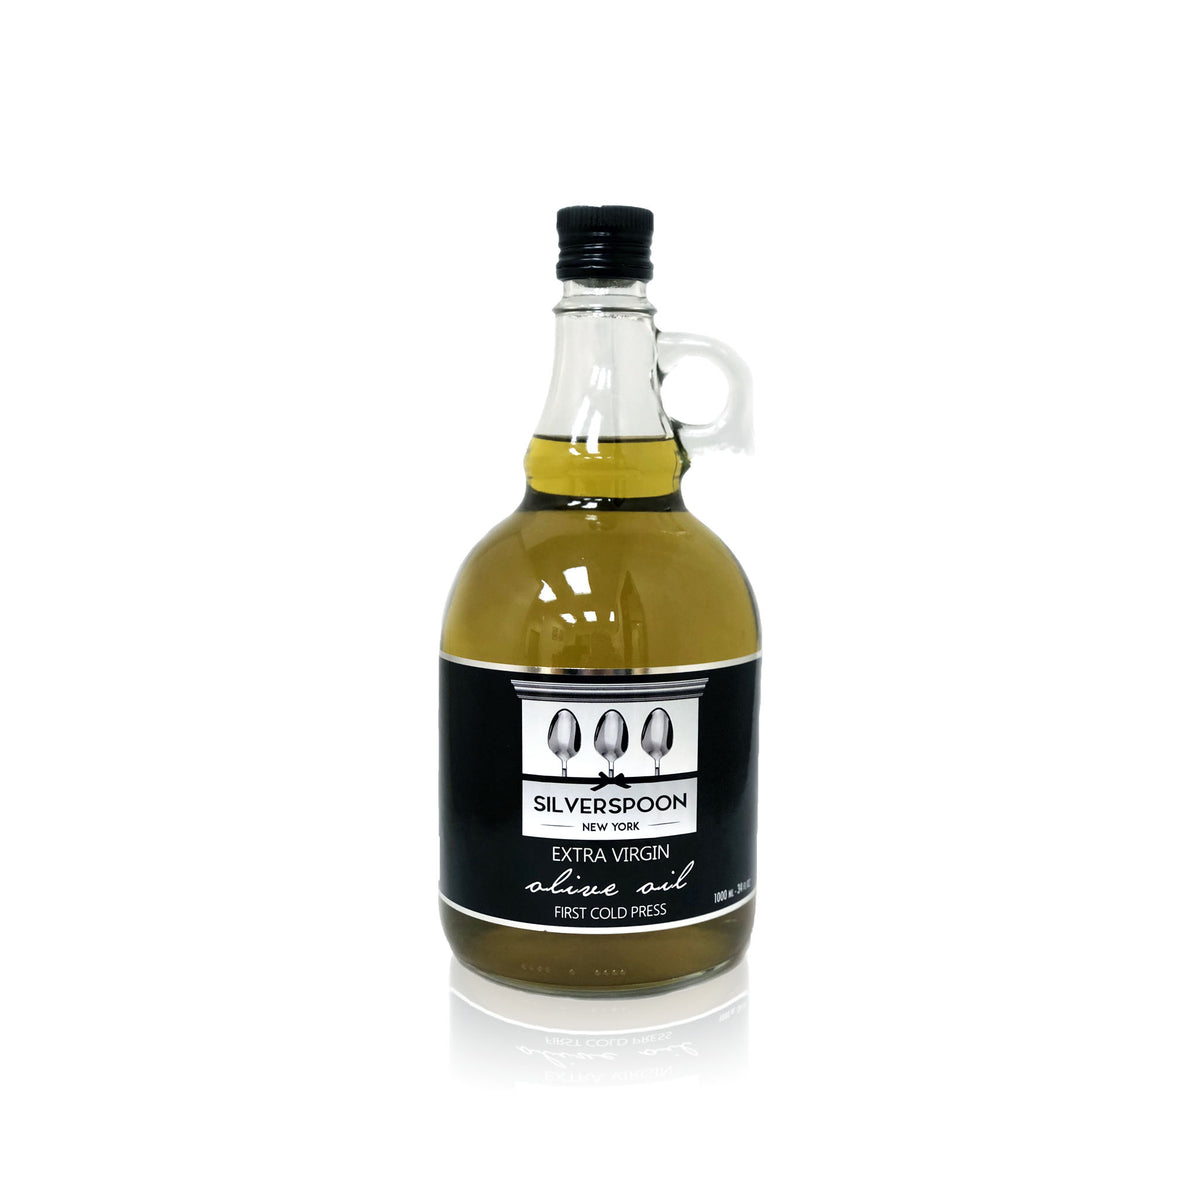 Sophia Oil-Silverspoon Extra Virgin Olive Oil 33.8oz